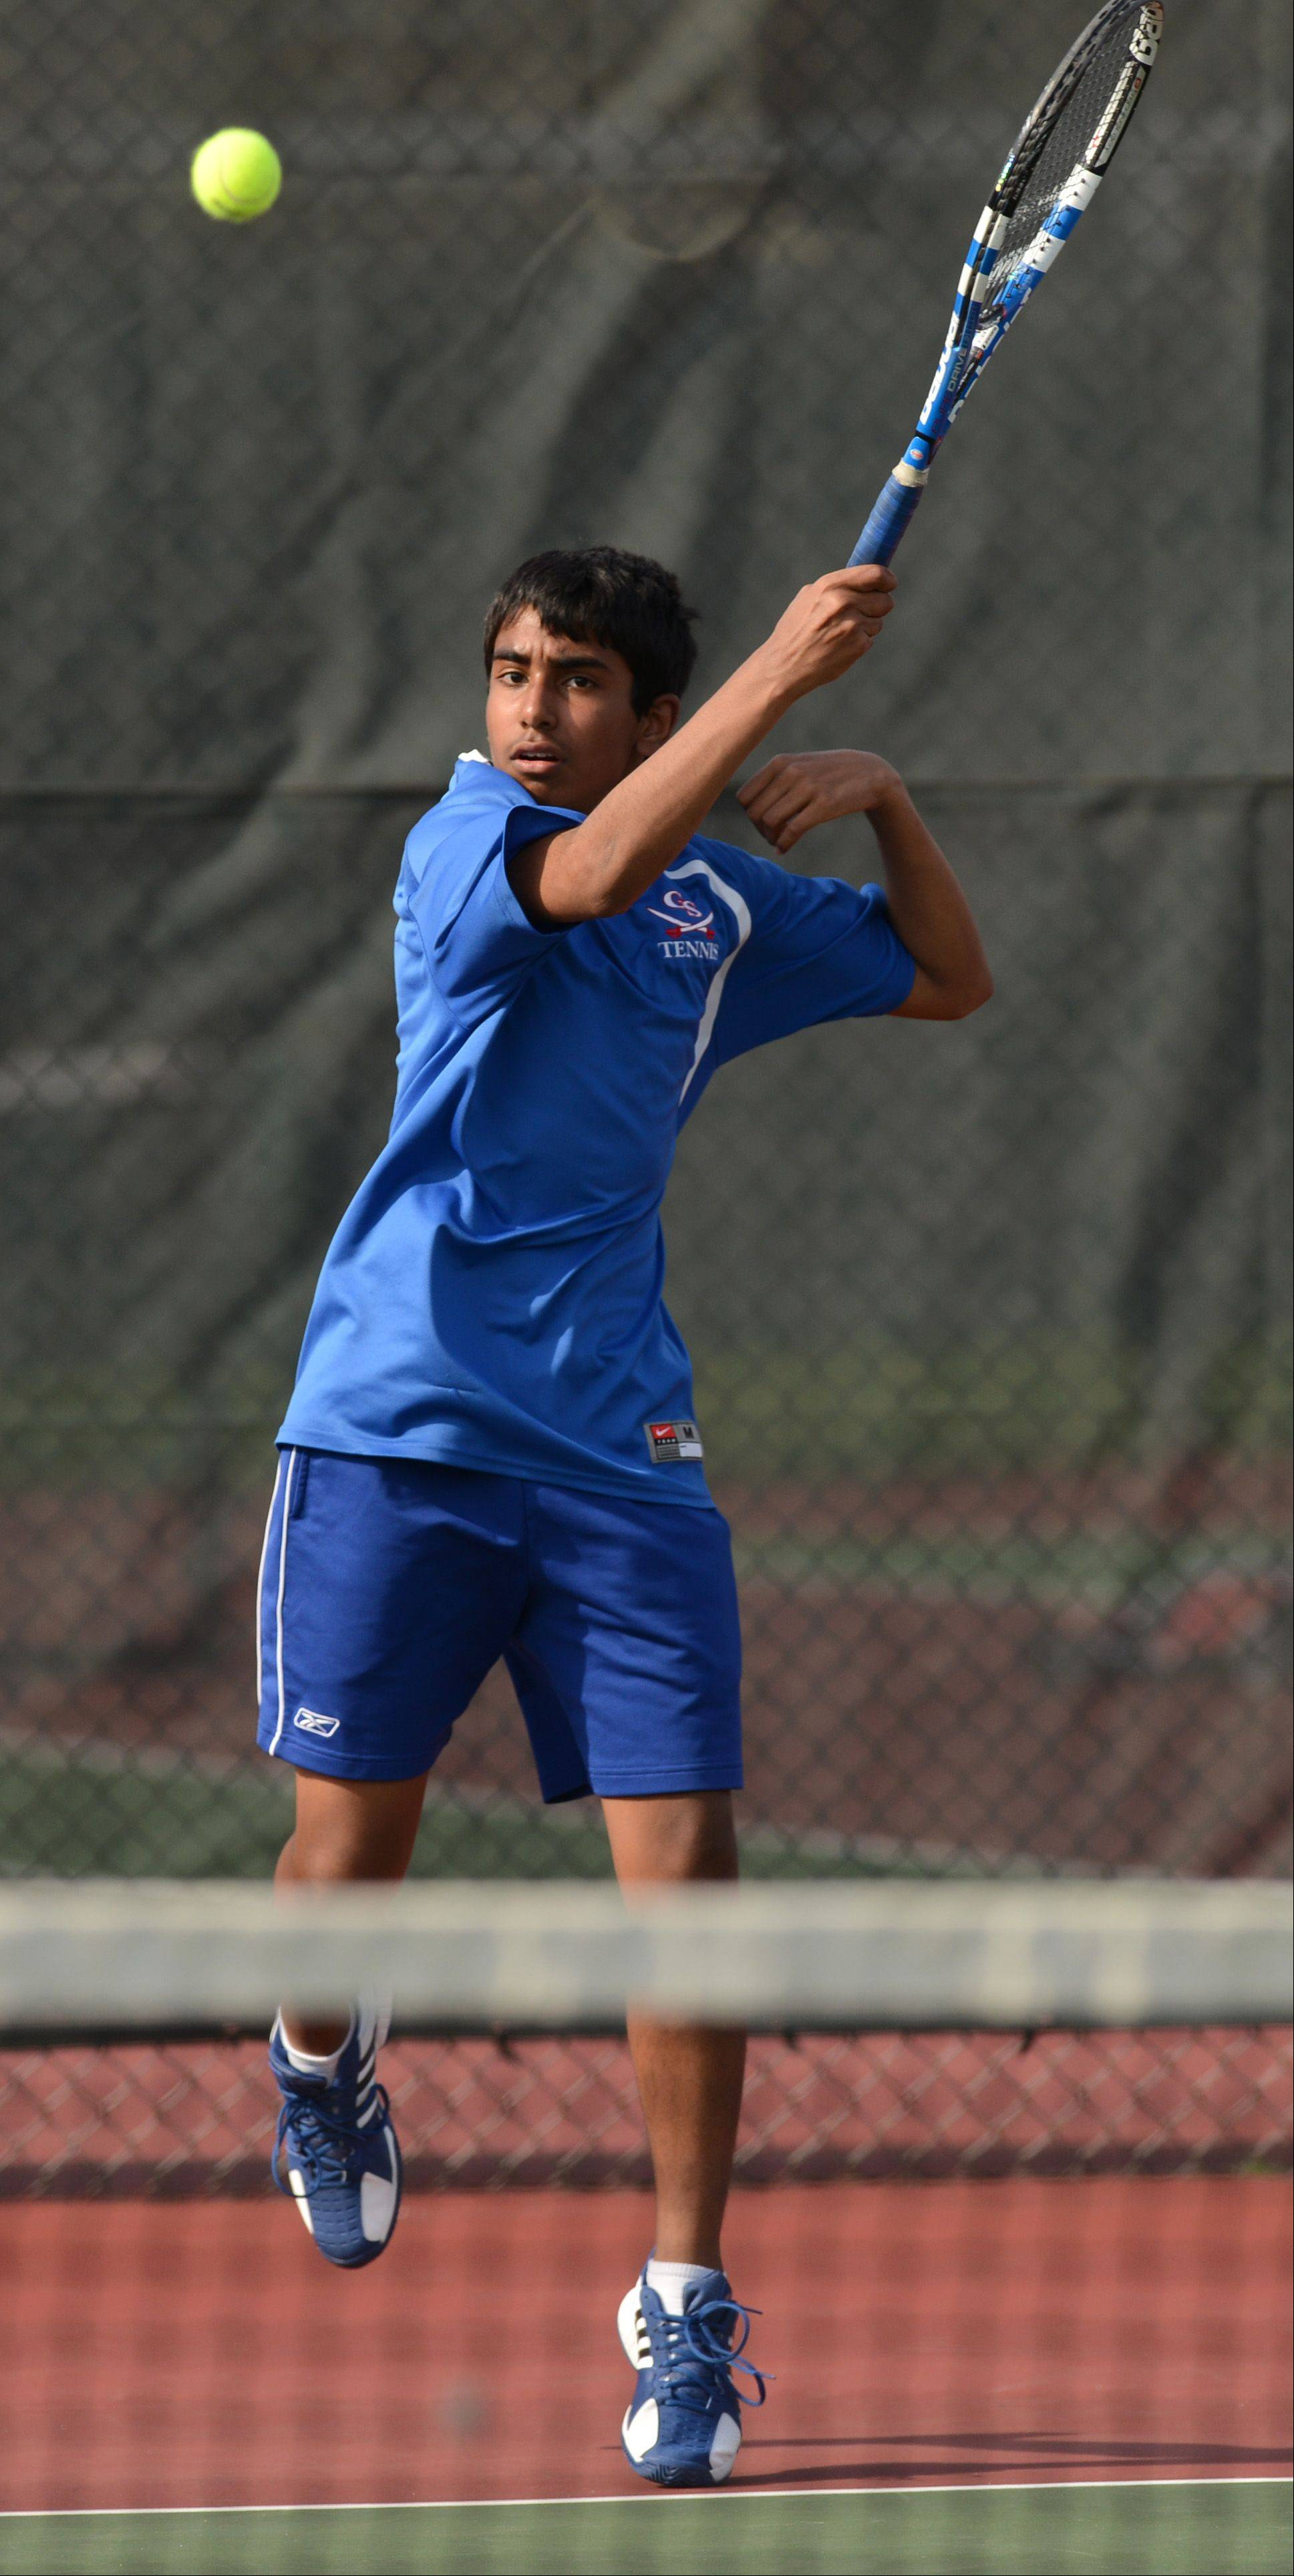 Number 2 singles Avi Panjwani of Glenbard South plays against Camden Knights of Addison Trail during a varsity boys tennis match in Glen Ellyn, Monday.